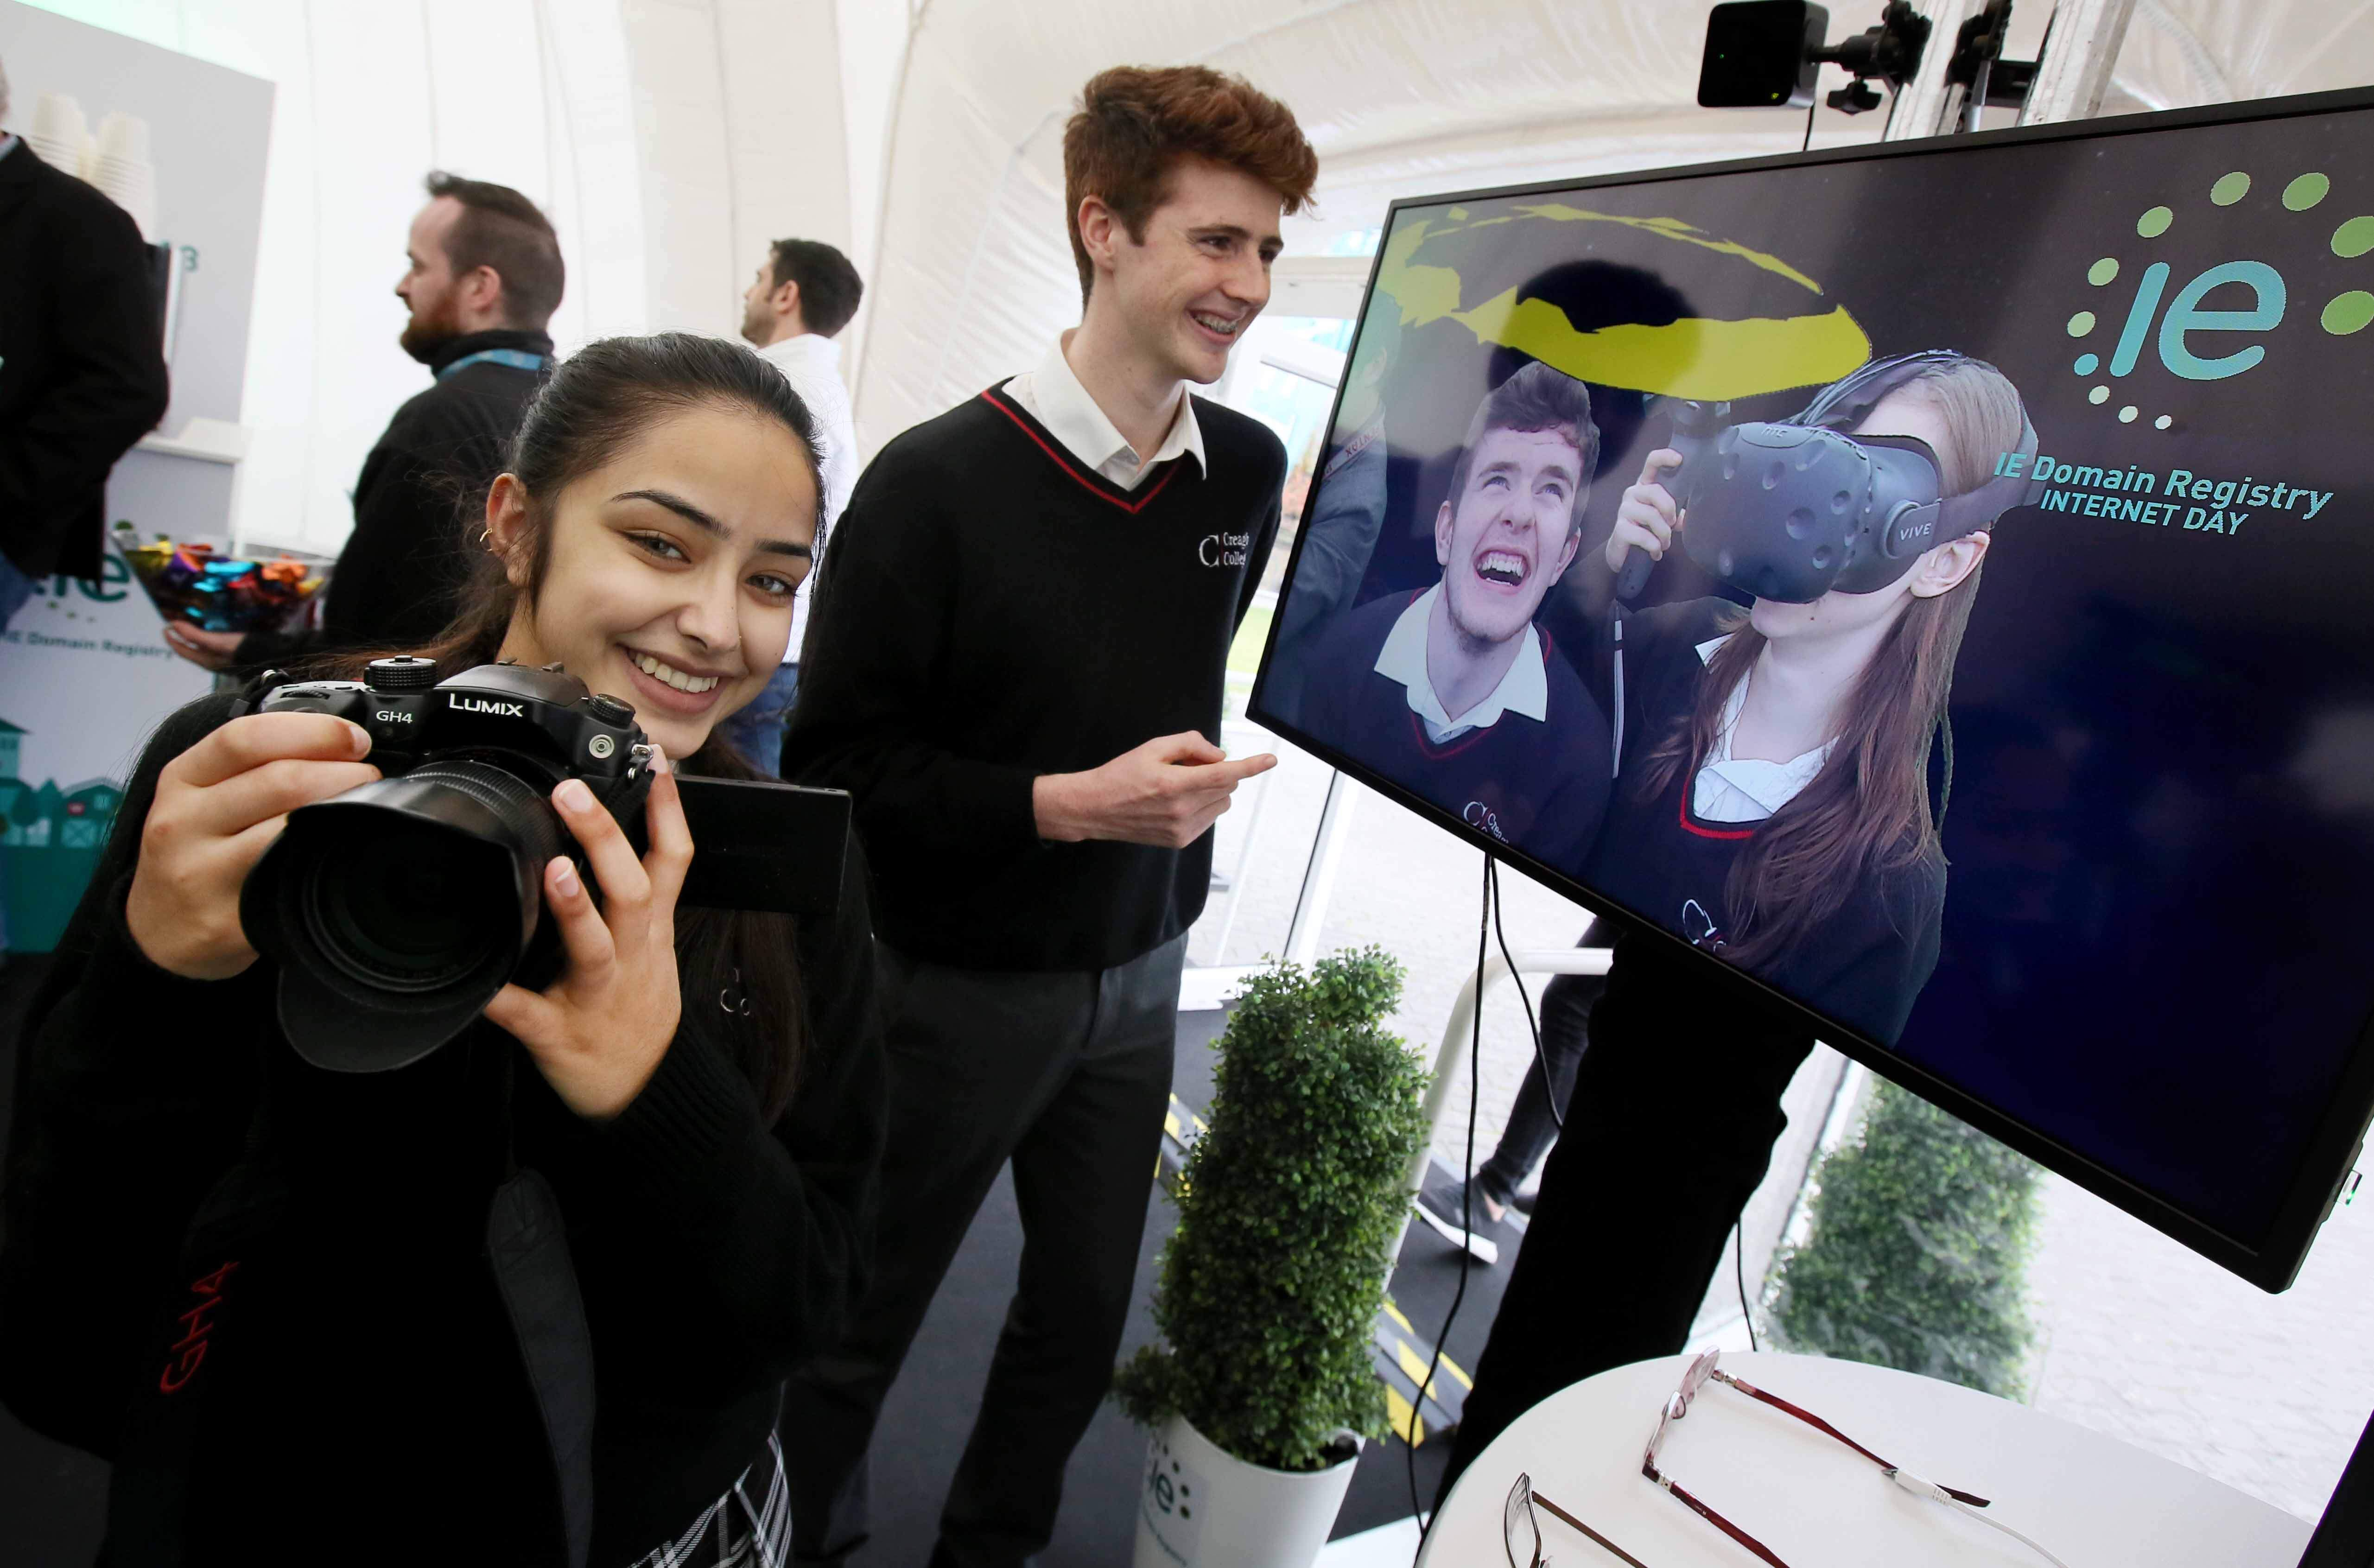 School children from Creagh College check out the mixed reality experience in the IE Domain Registry Digital Dome